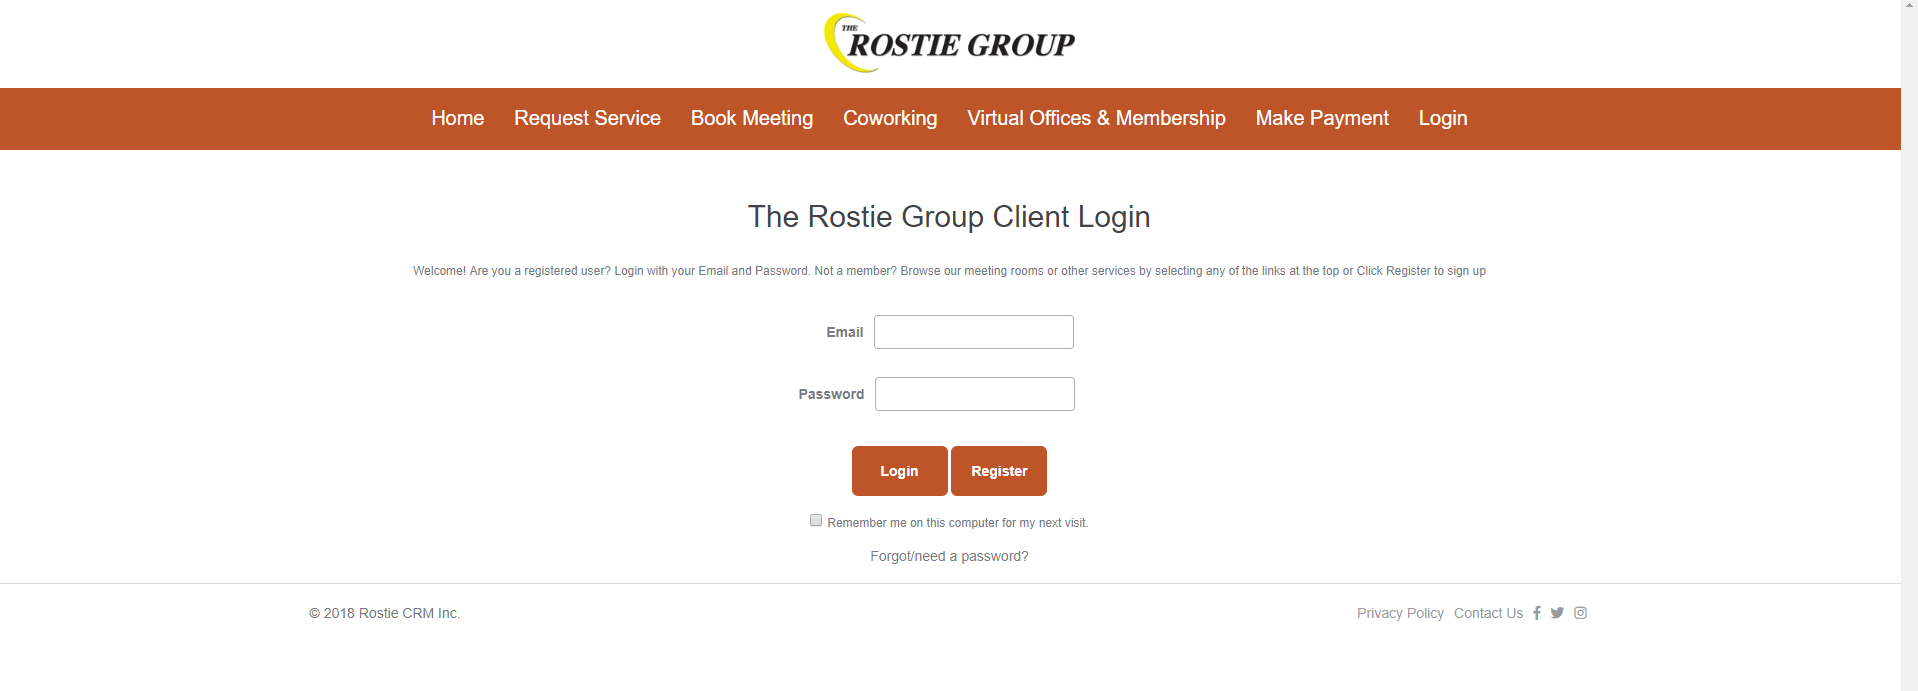 Rostie Group Online Booking Portal